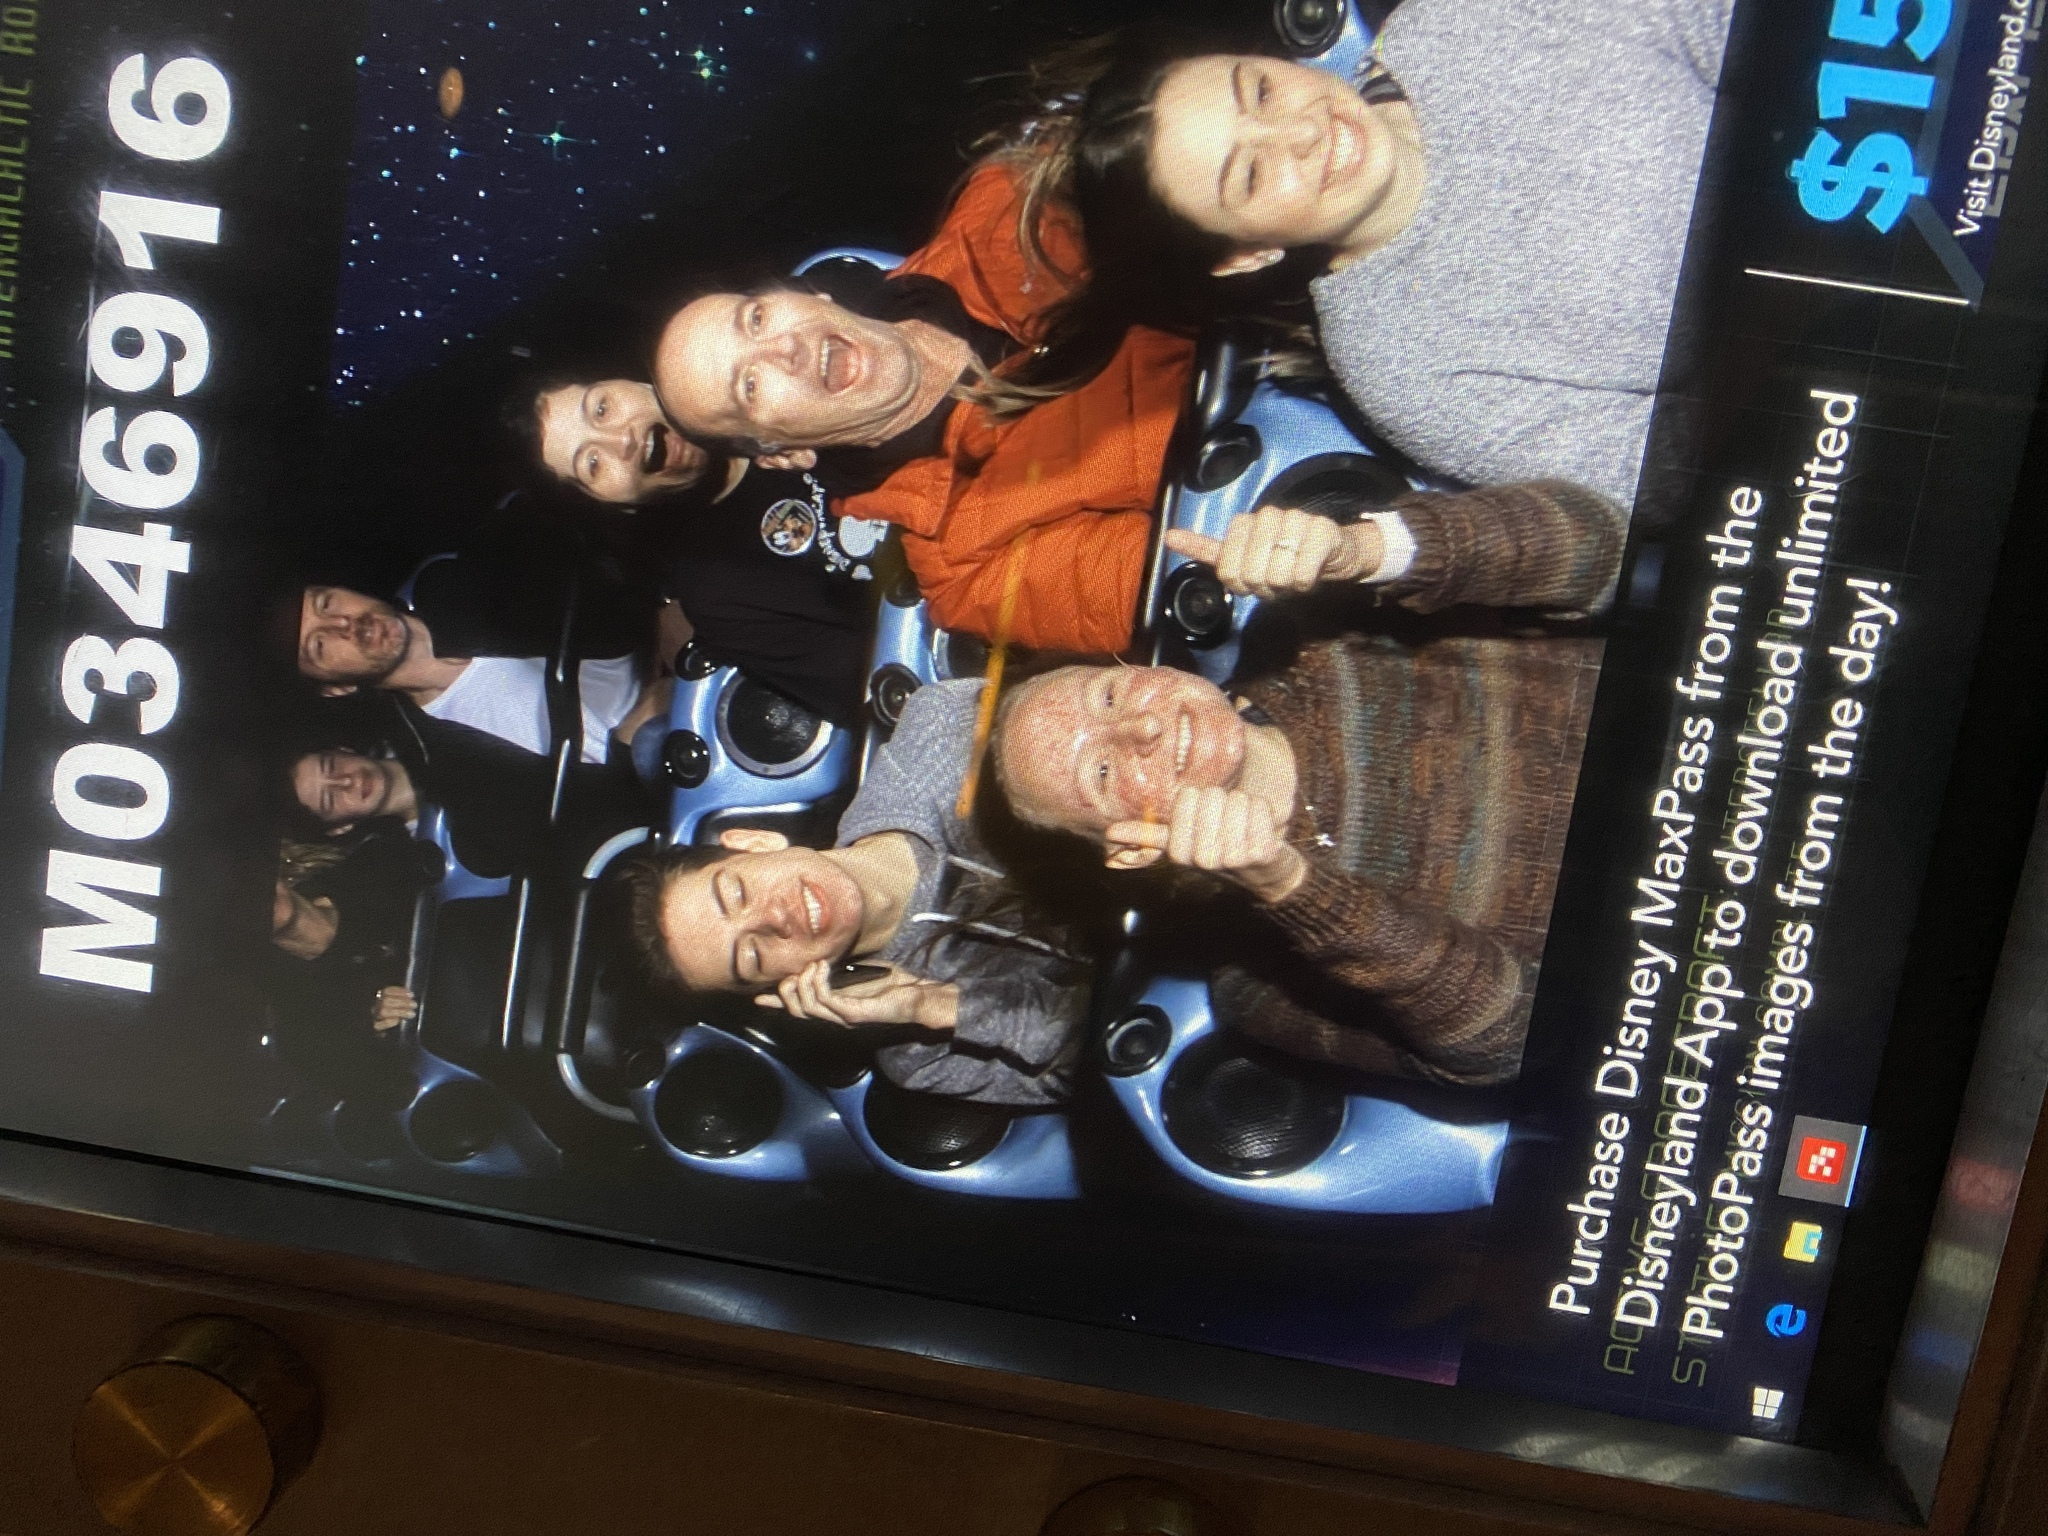 Ethan and some friends on Space Mountain at Disneyland. Caption: Me and friends at Disneyland, taking some fun photos!